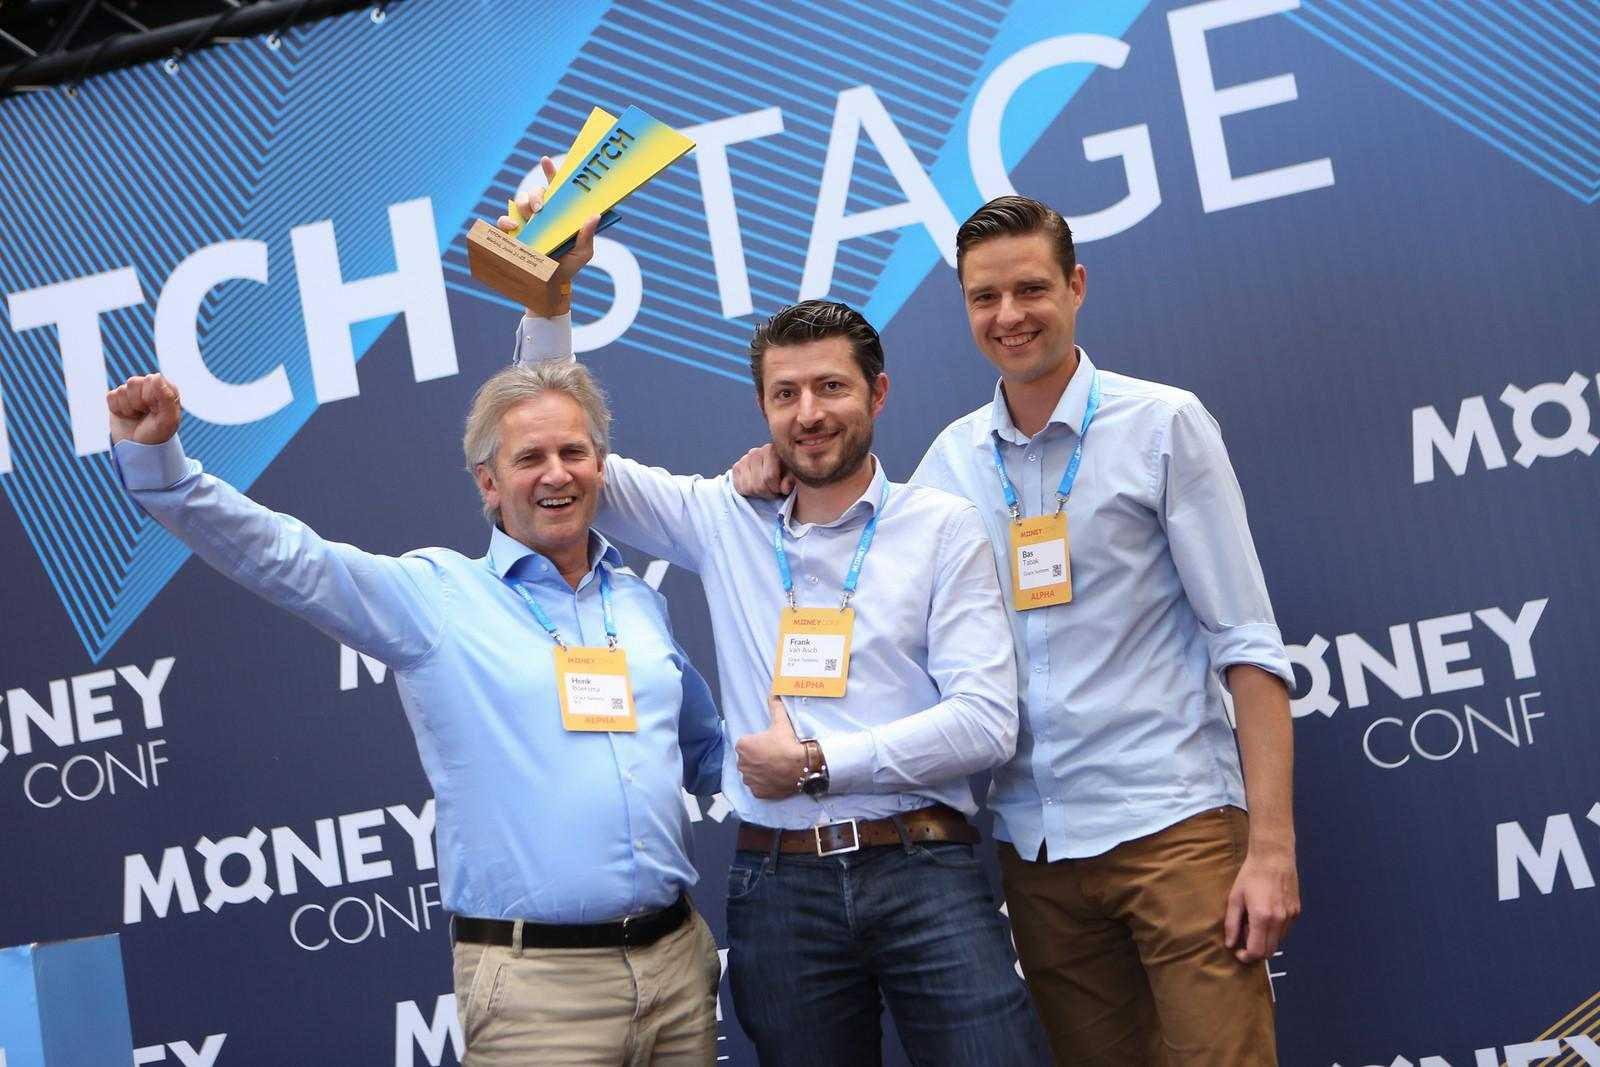 Apply Now for MoneyConf 2017 – One of the Leading Conferences Hosting Innovators Who are Building the Finance Technologies of the 21st Century